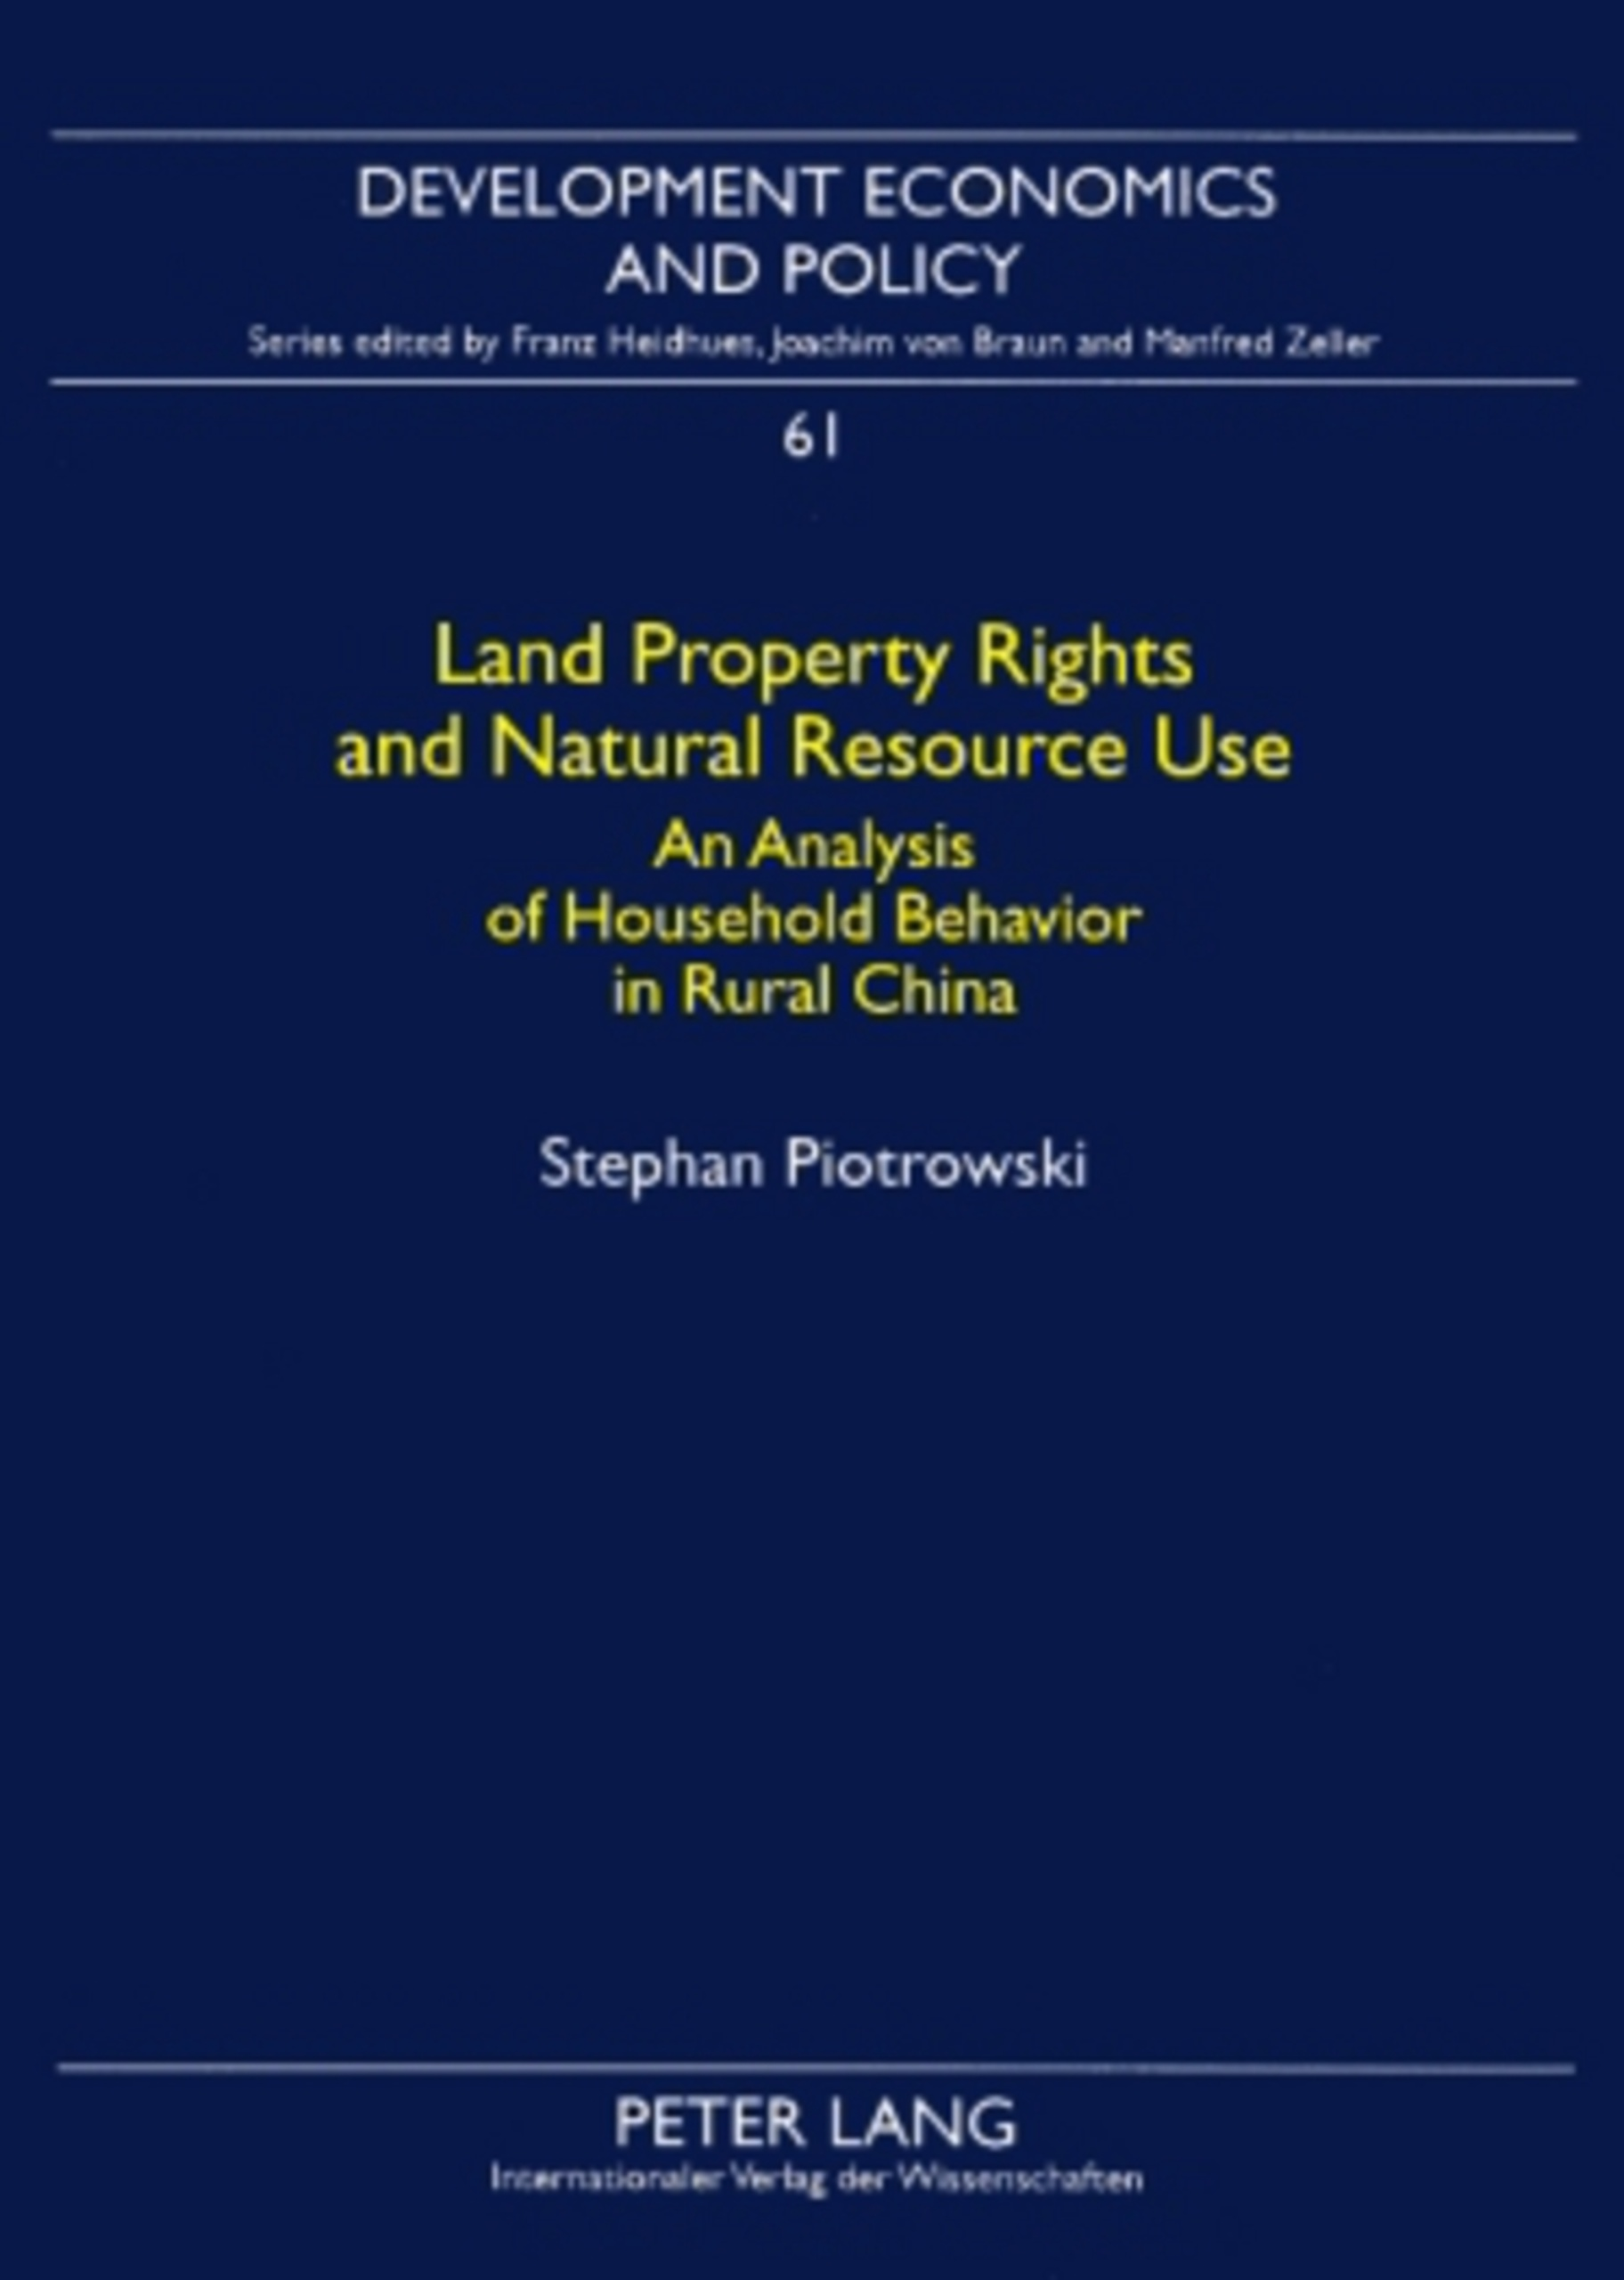 Title: Land Property Rights and Natural Resource Use